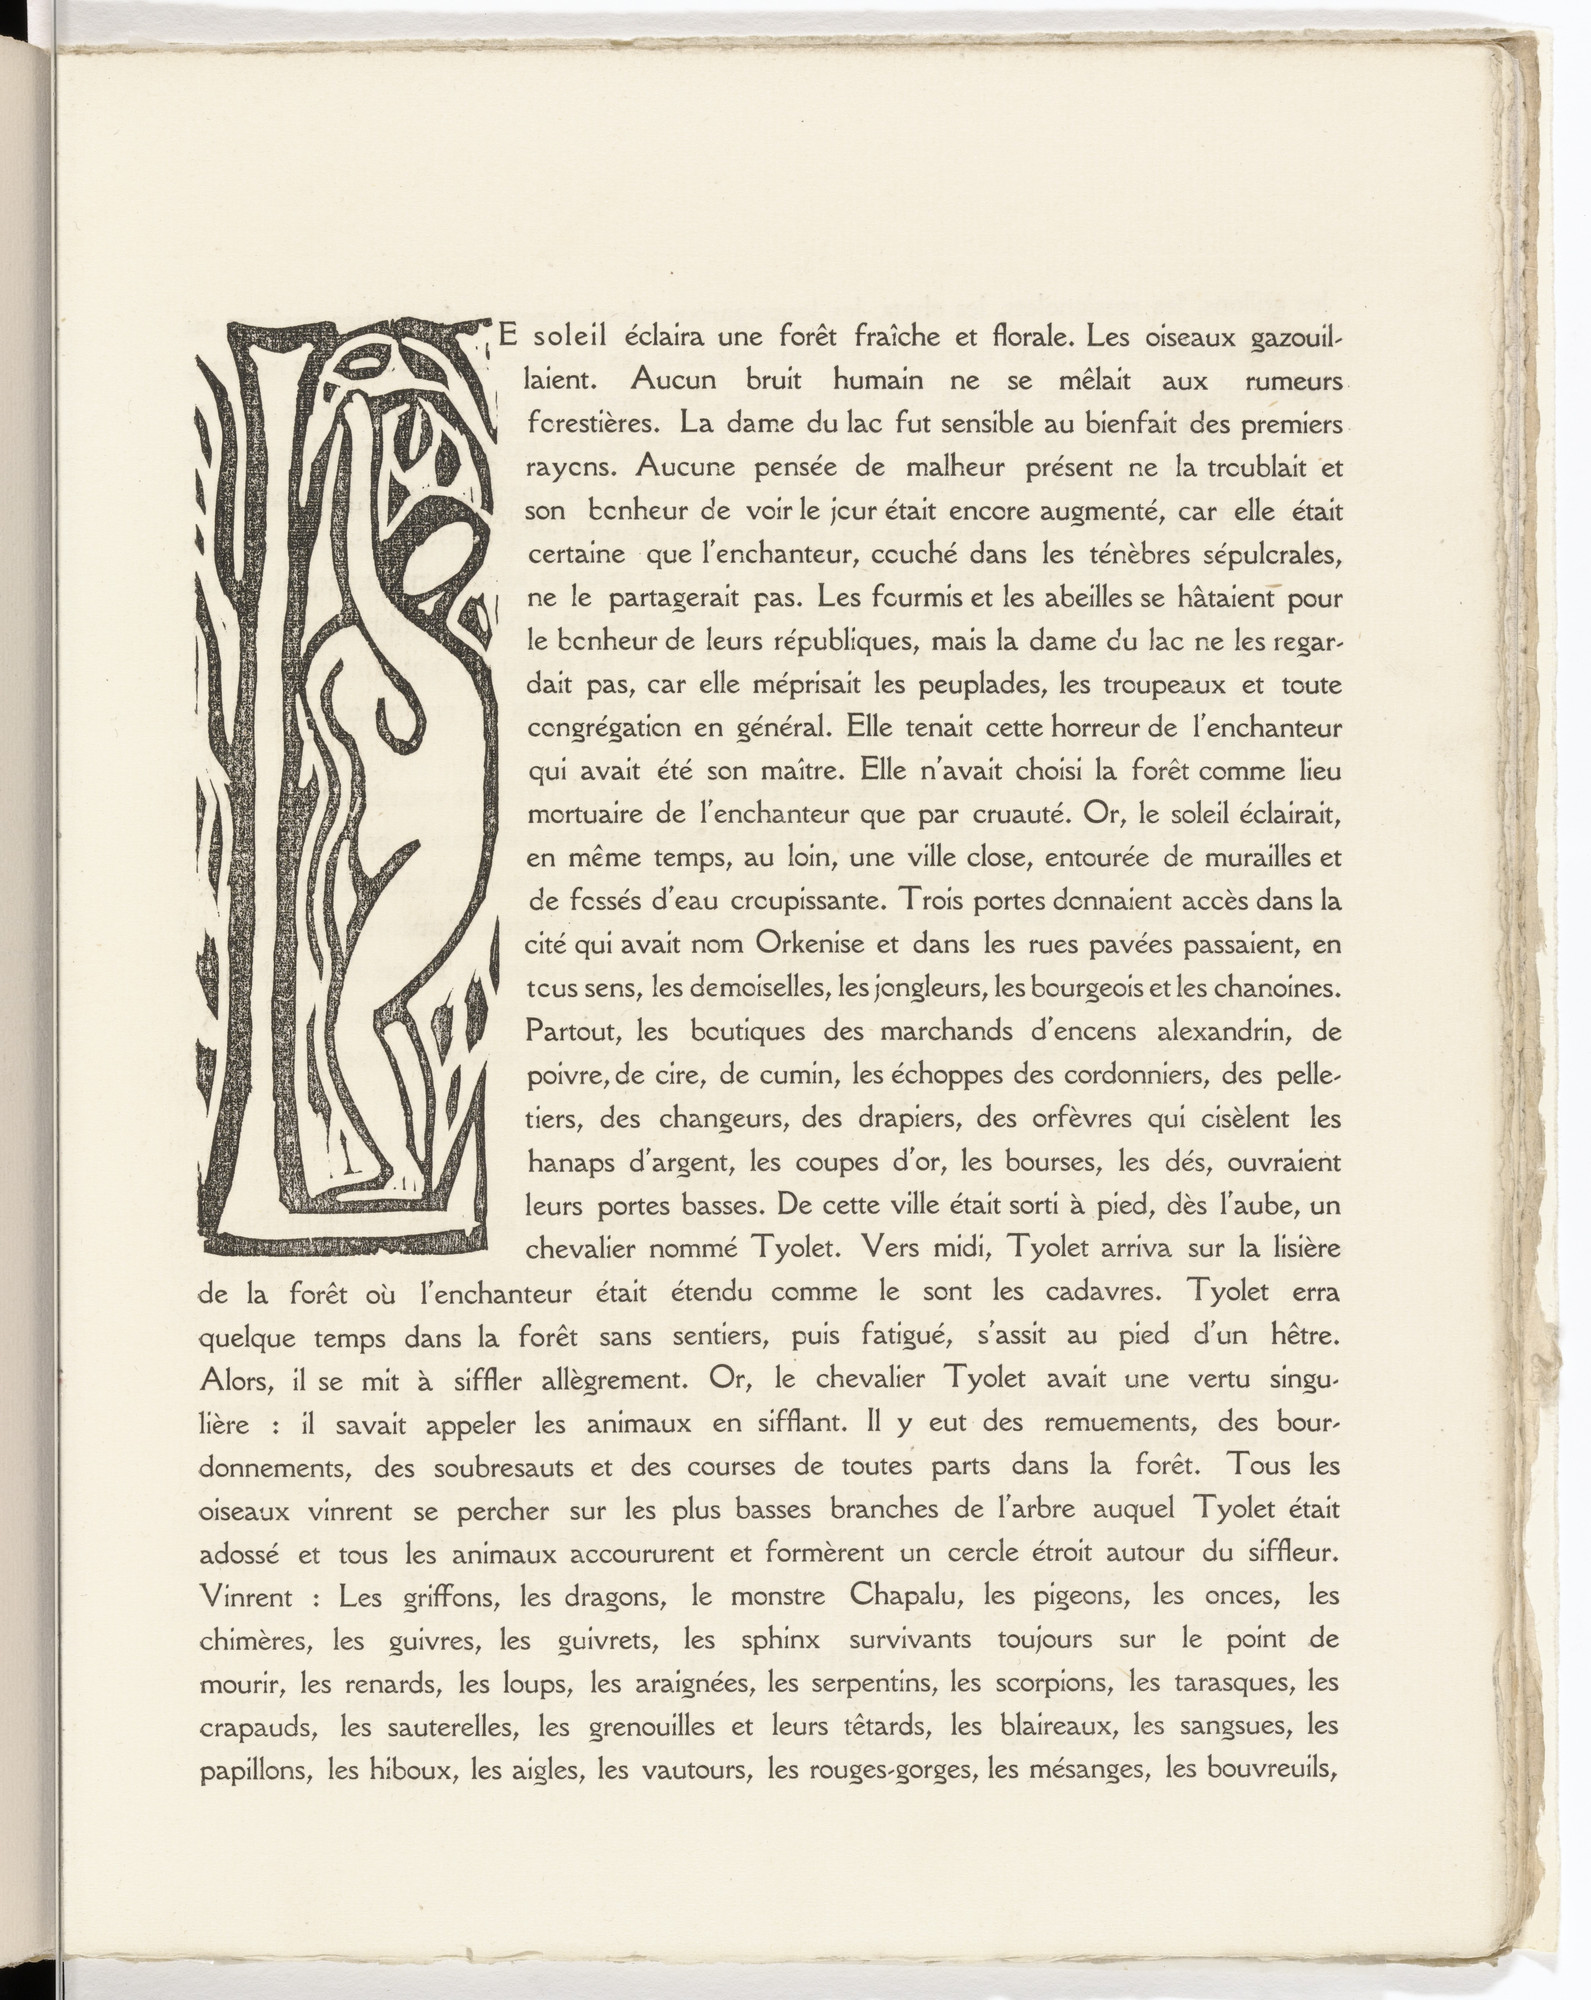 André Derain. Pictorial initial L (folio 21) from L'Enchanteur pourrissant. 1909